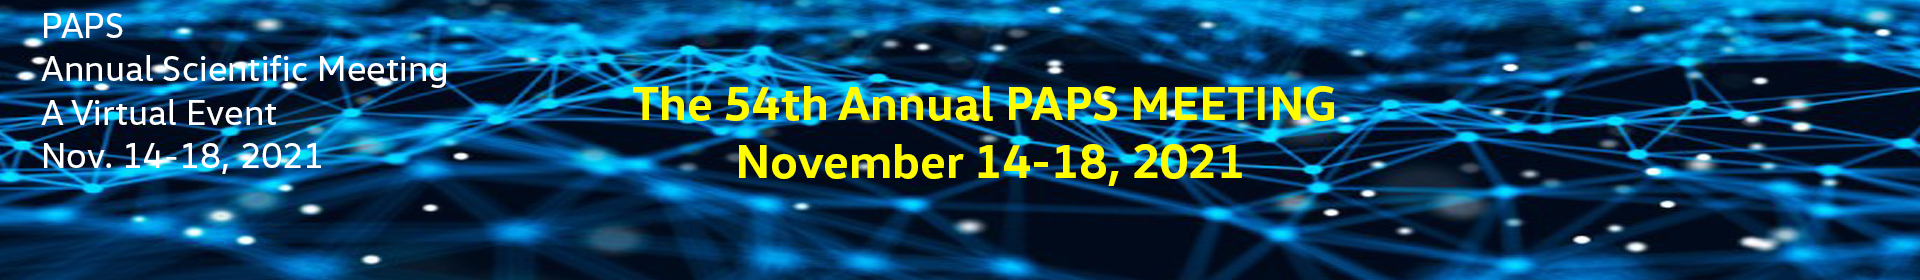 PAPS 2021 Event Banner